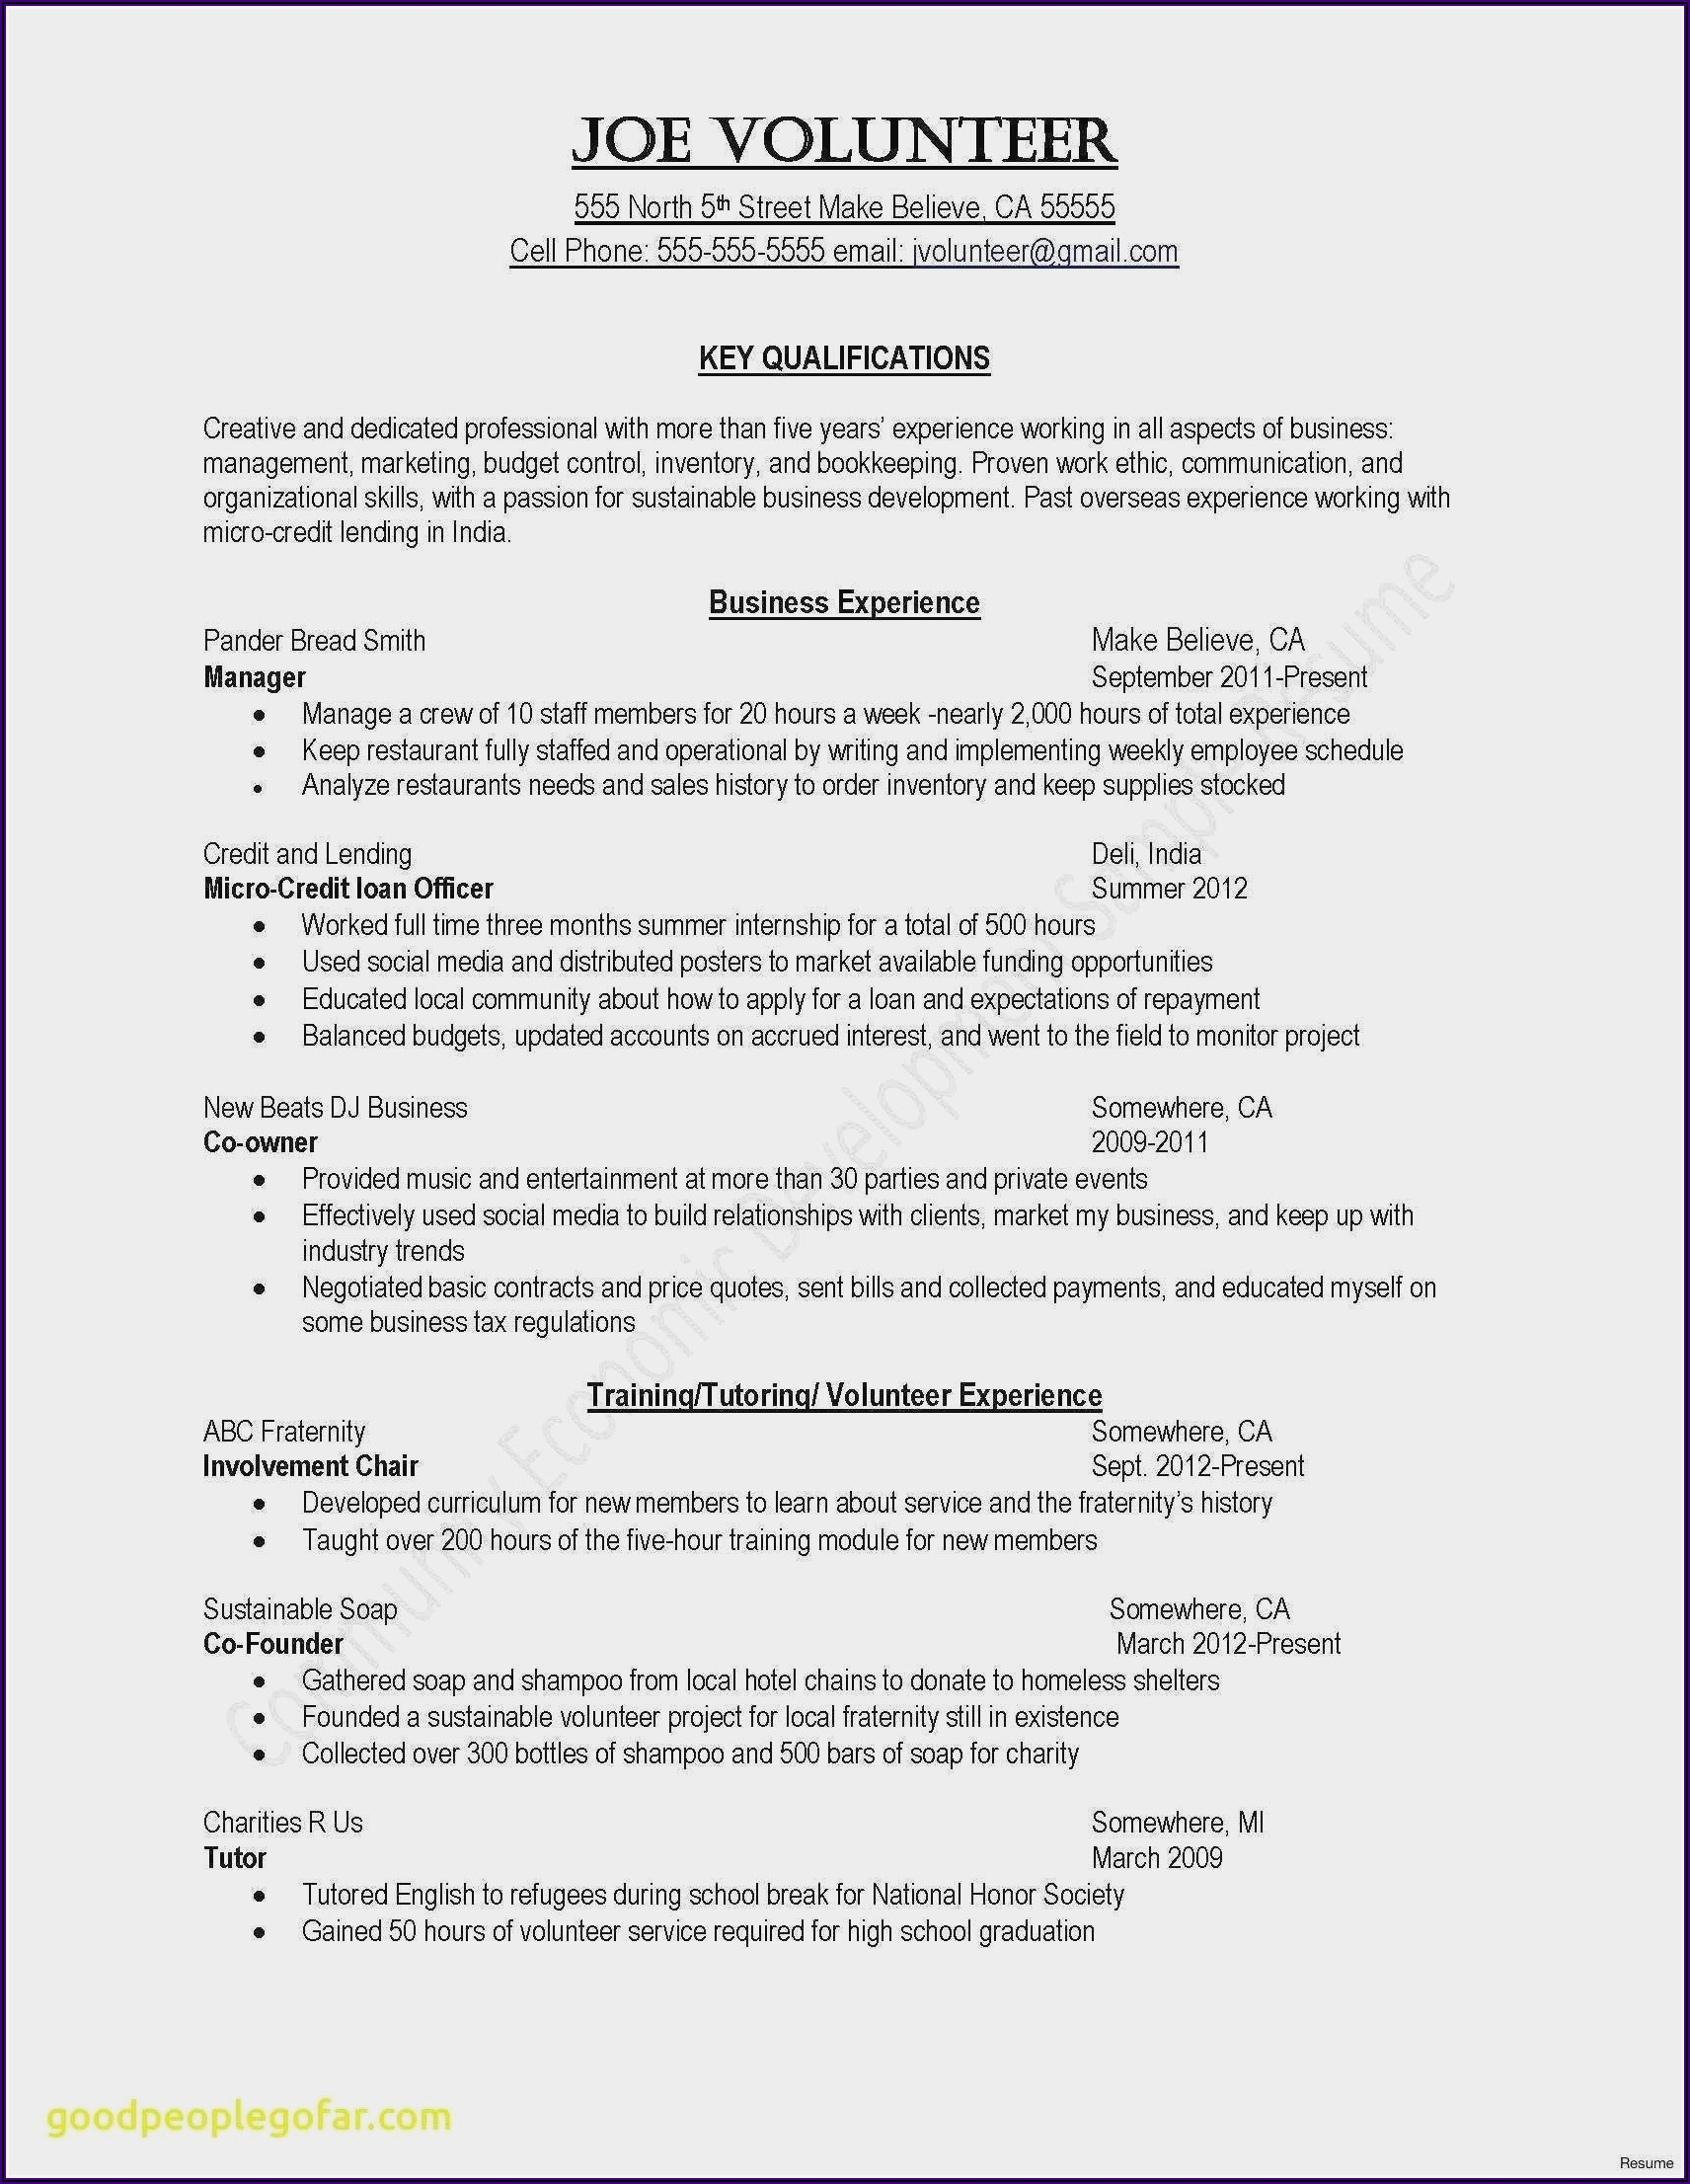 Professional Resume Writers Rochester Ny